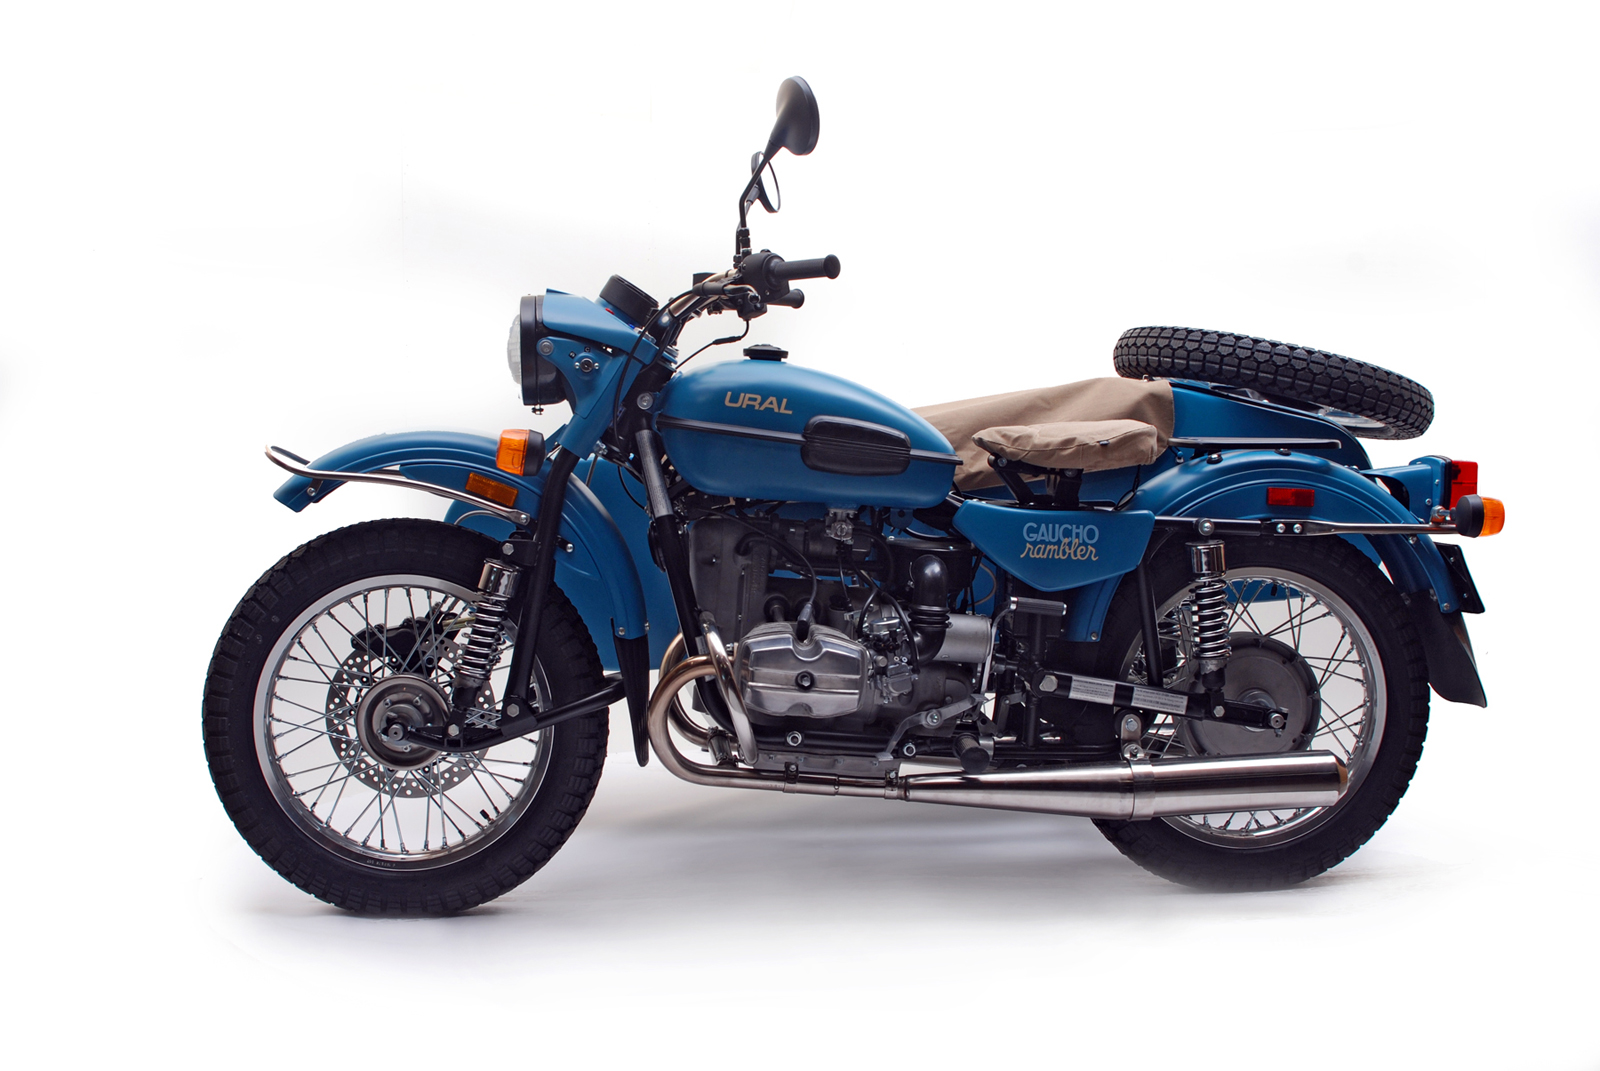 2013 ural gaucho rambler limited edition price annouced, only 502013 ural gaucho rambler limited edition